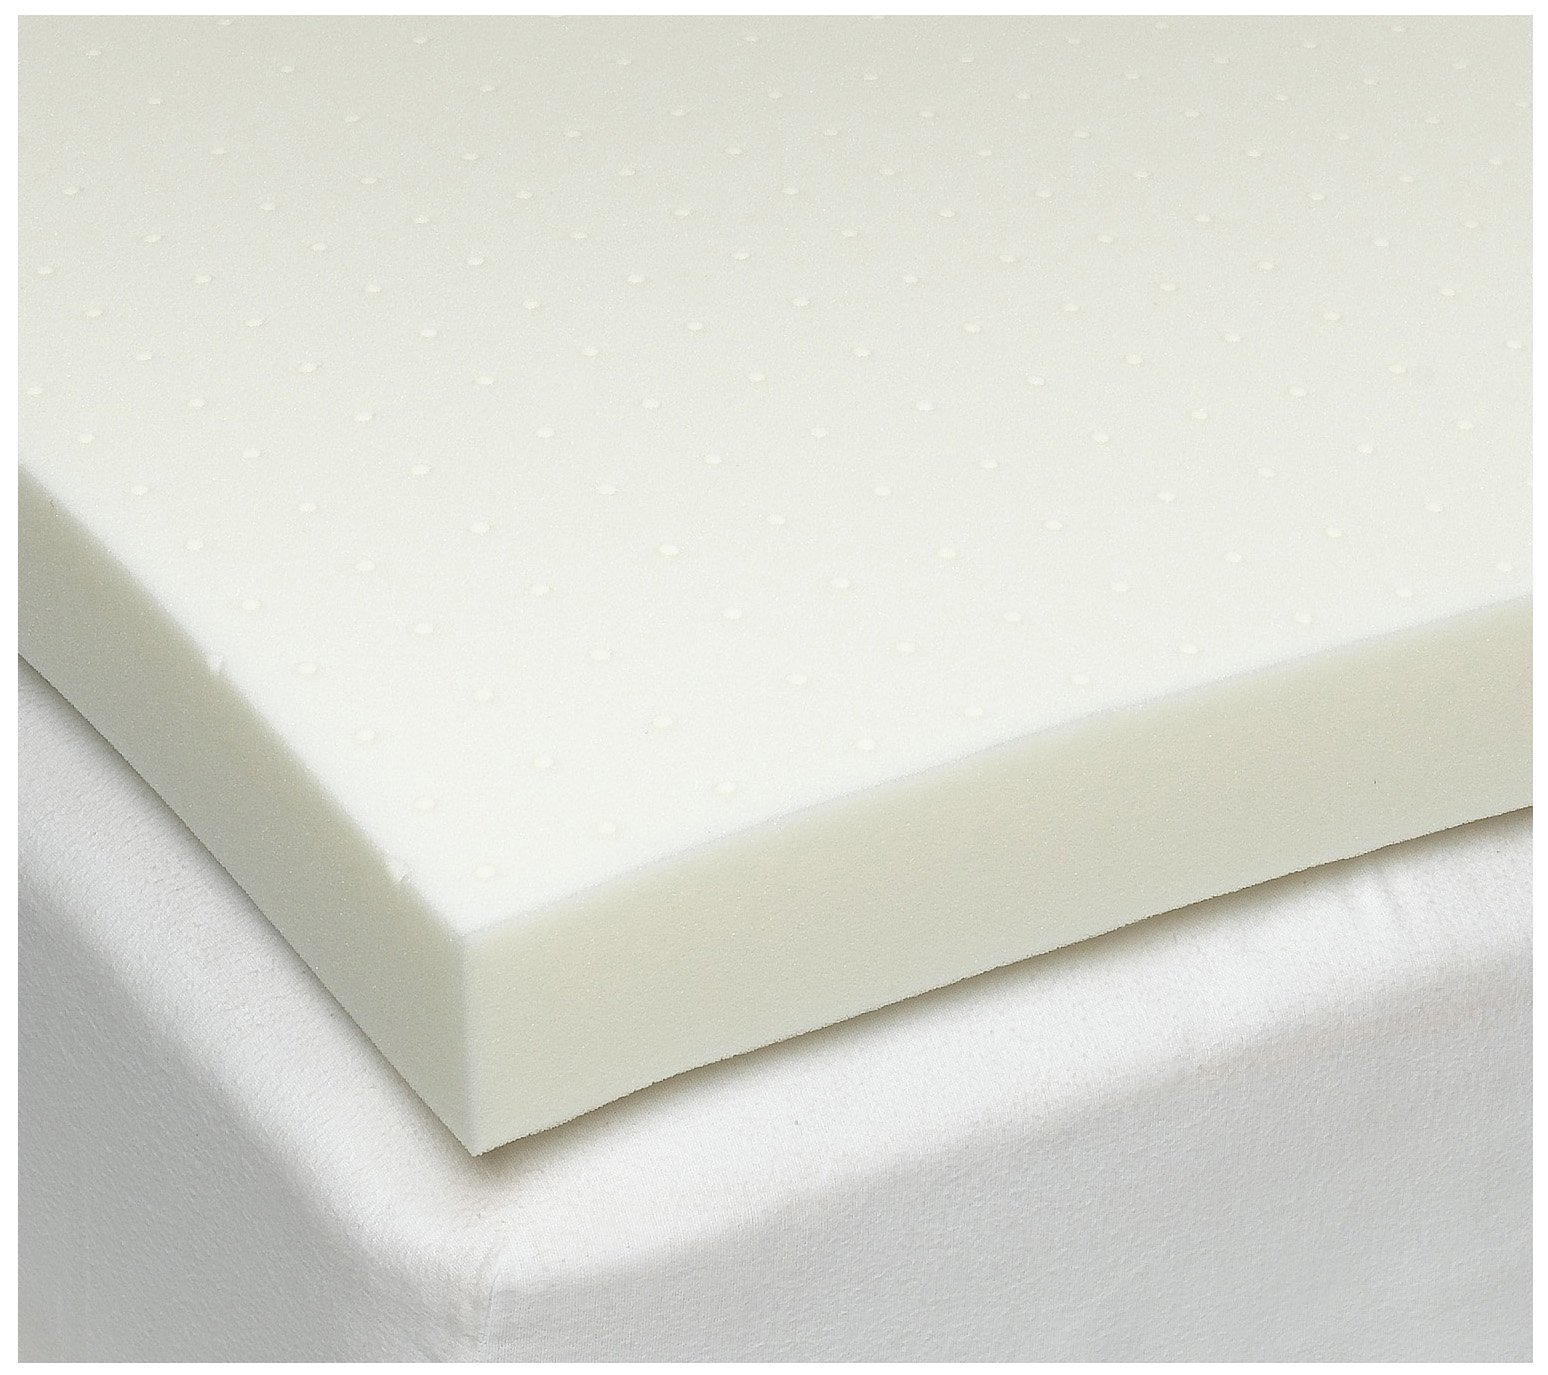 Top 4 Mattress Toppers for Side Sleepers